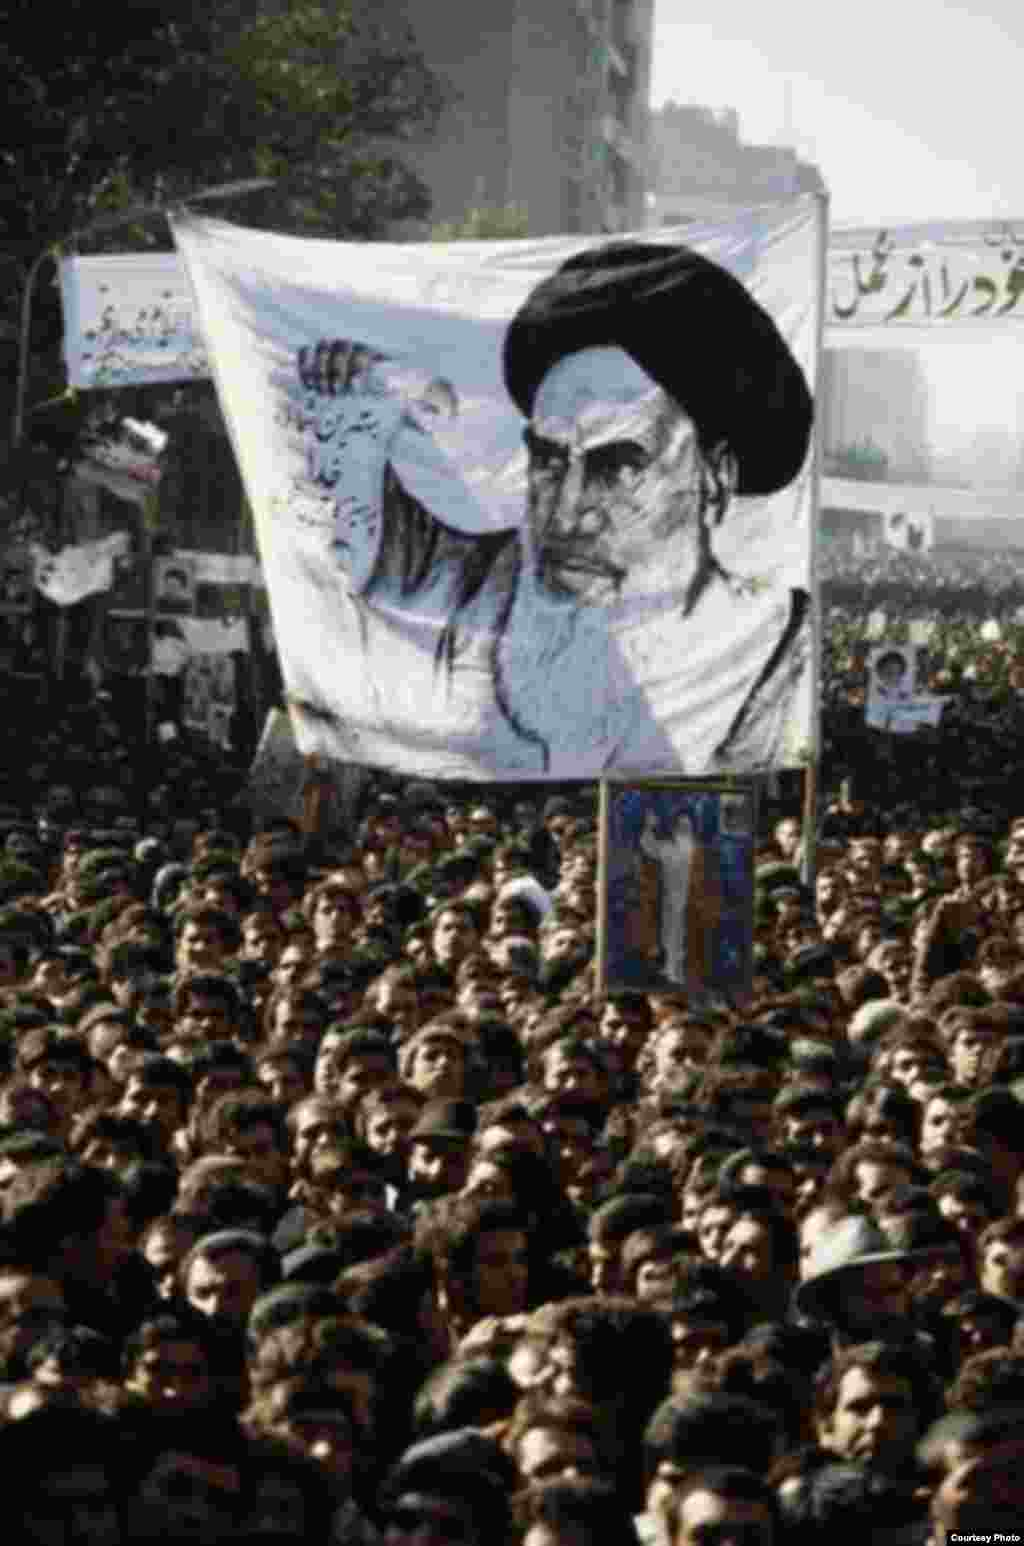 Supporters of the Iranian Revolution demonstrate outside the U.S. Embassy in Tehran during the crisis.